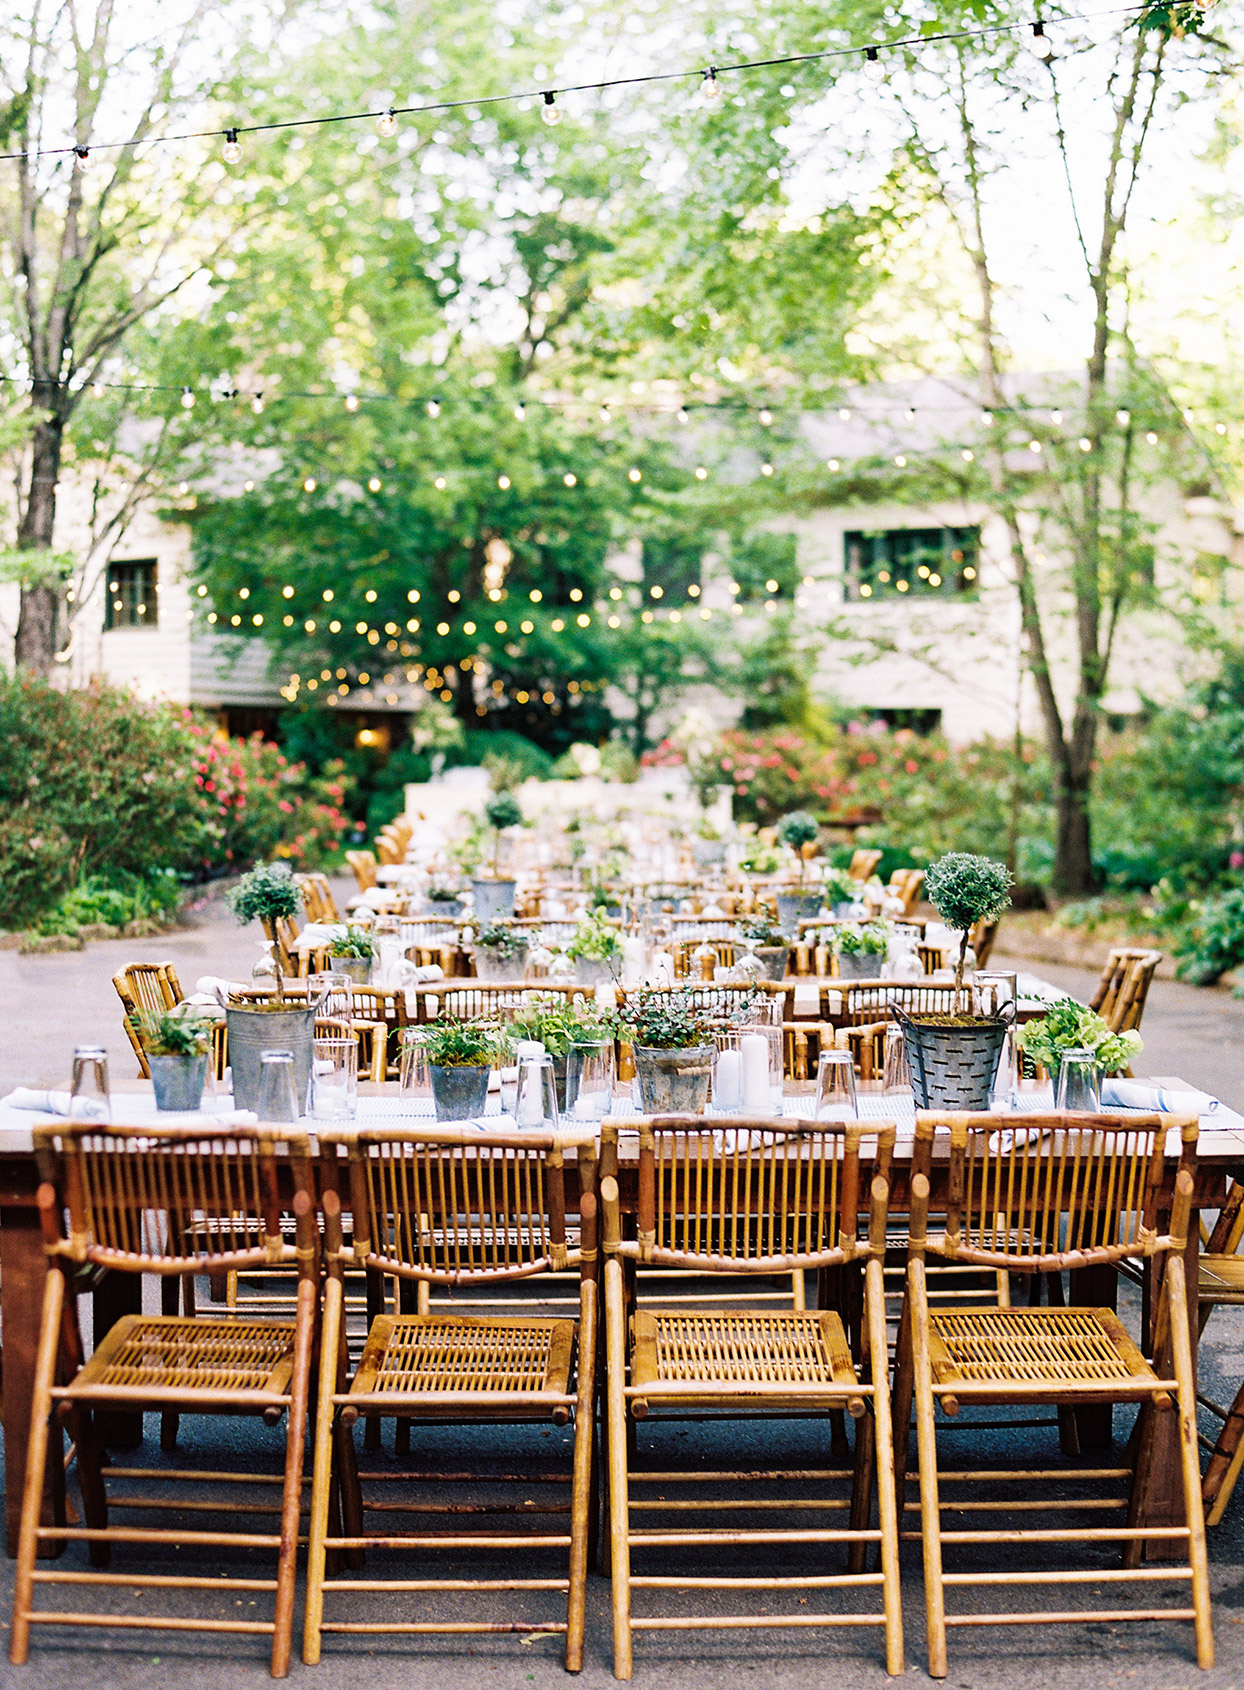 elegant rustic welcome party tables set up in driveway